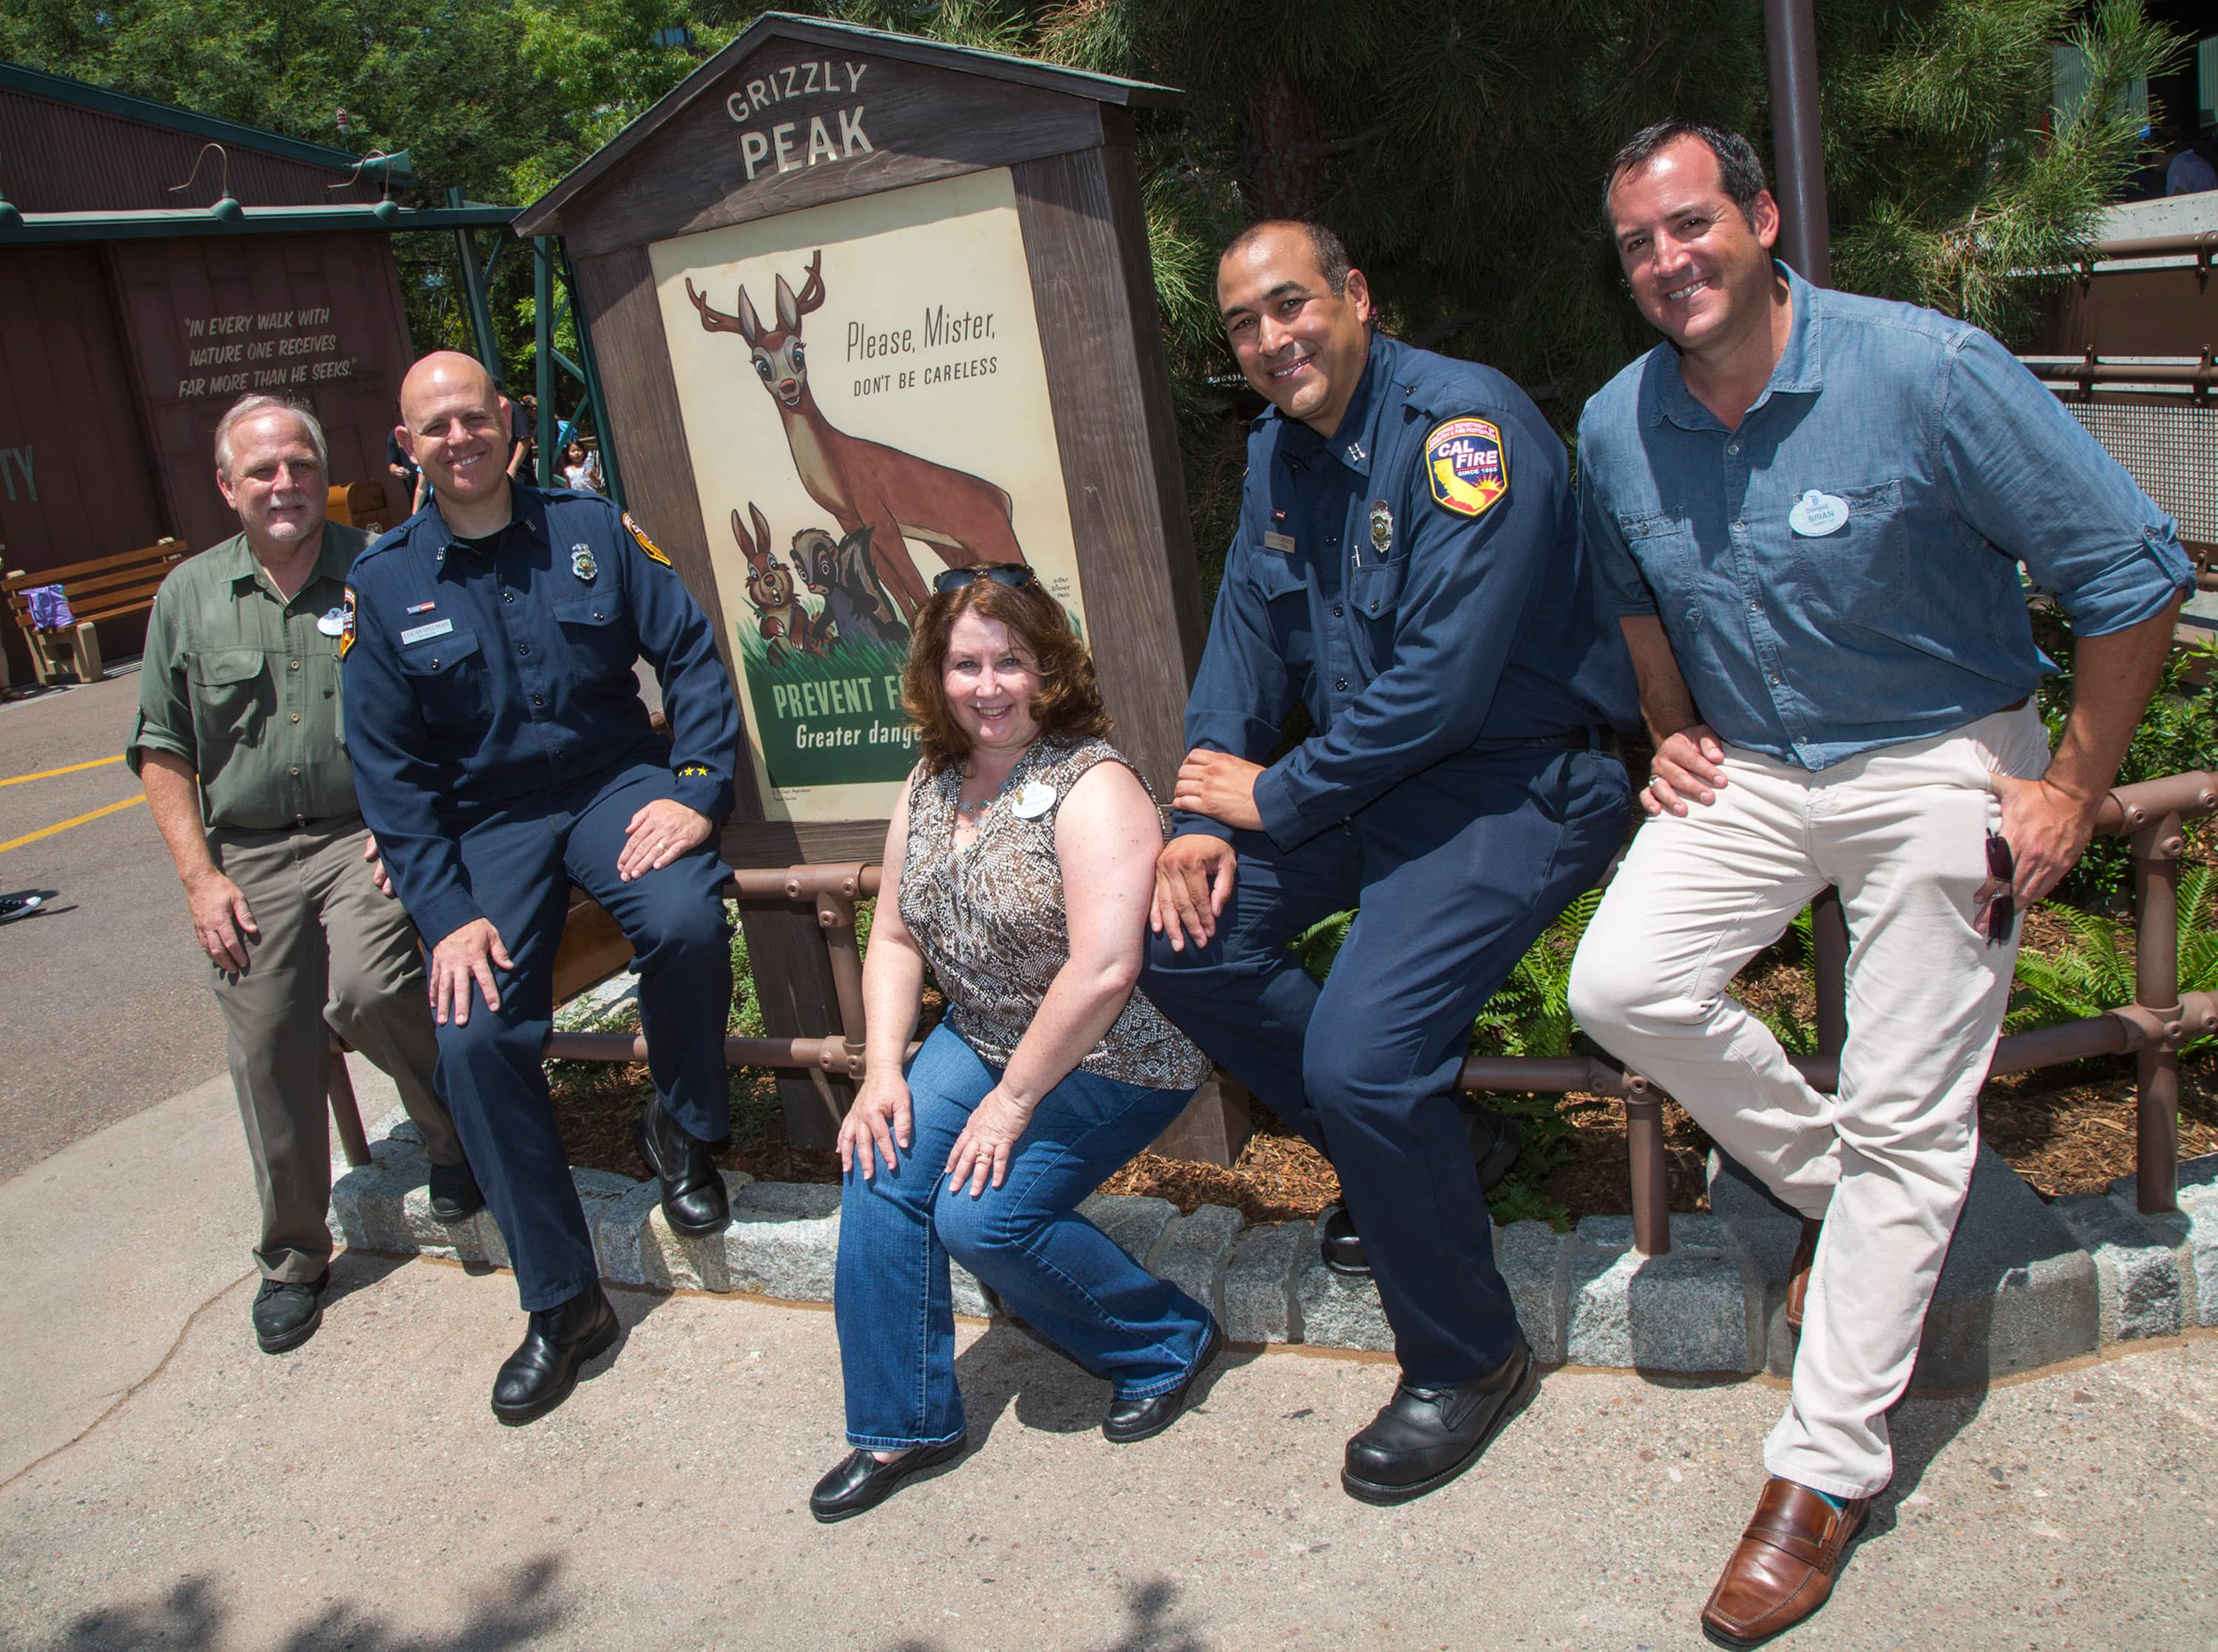 Imagineers Team Up with CAL FIRE to Create Story of Grizzly Peak Airfield at Disney California Adventure Park